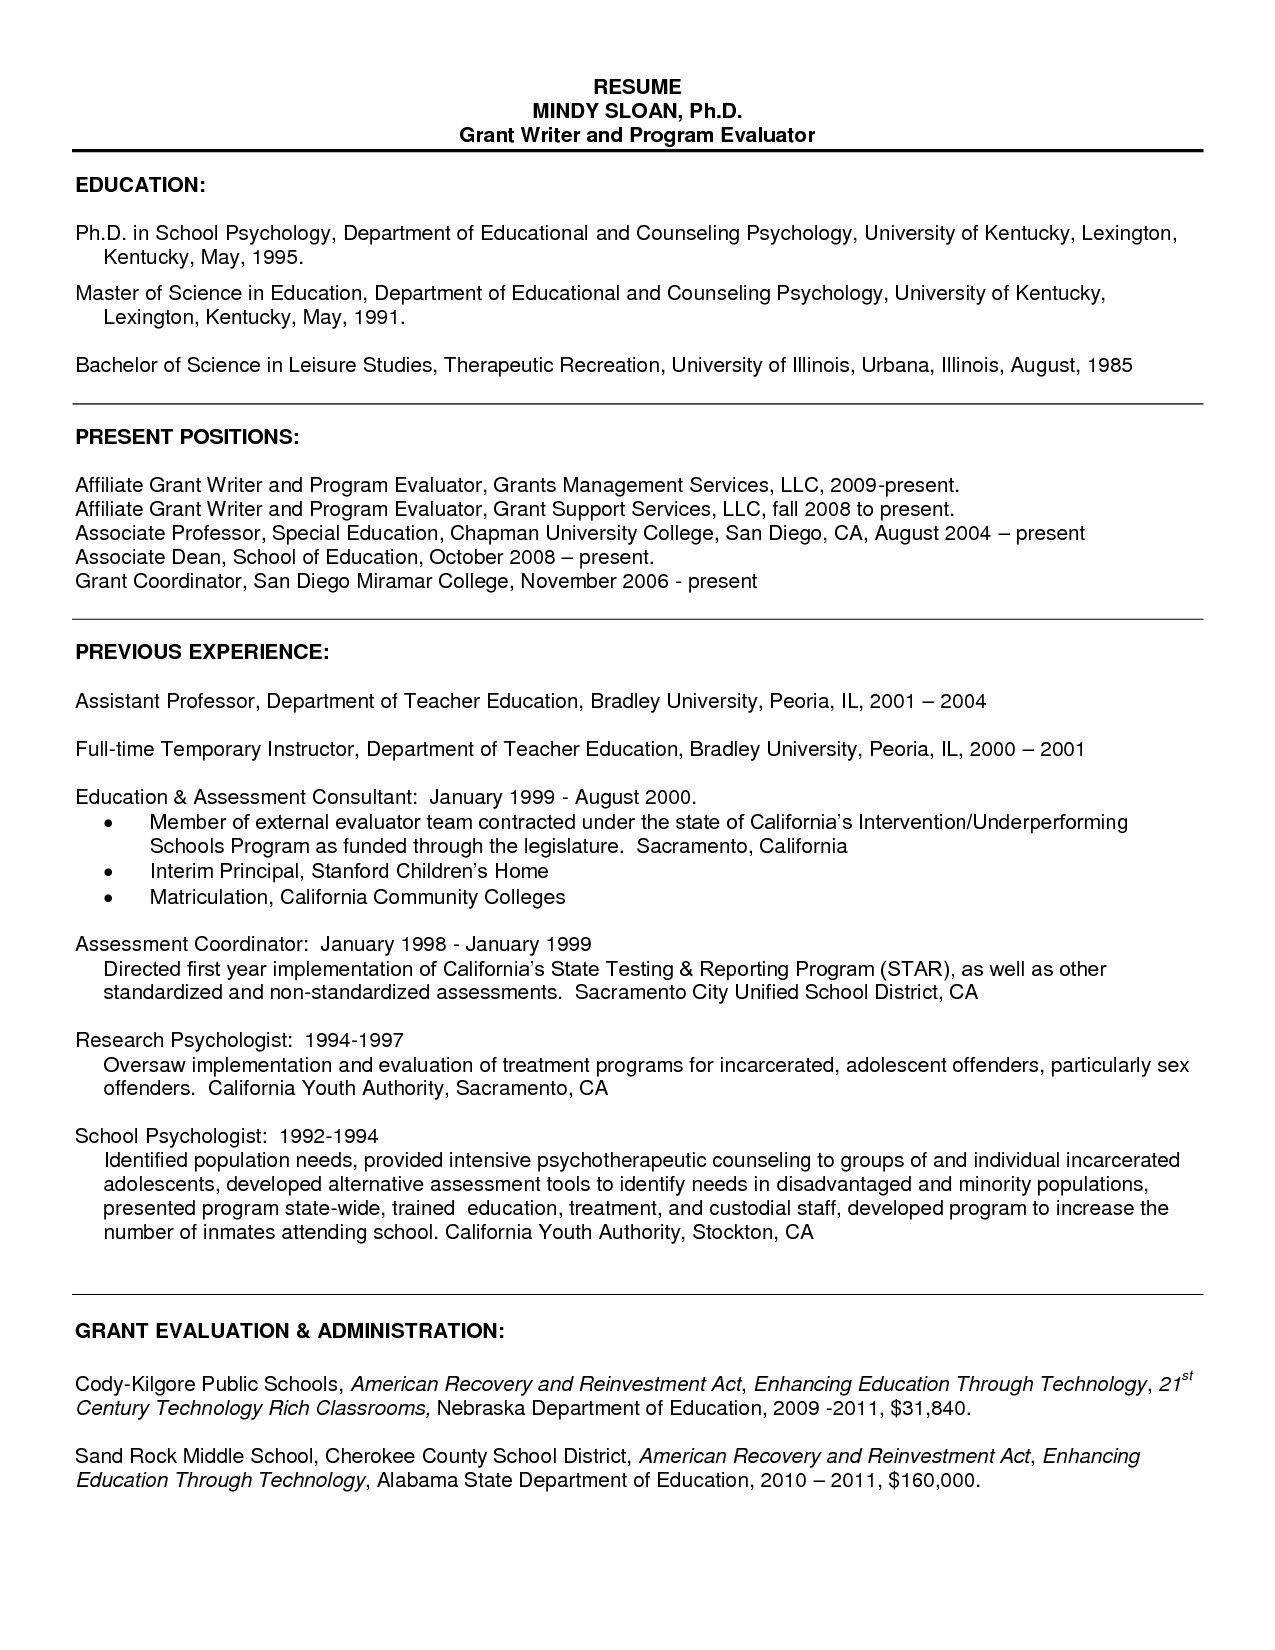 Resume sample for psychology graduate resume sample for psychology resume sample for psychology graduate resume sample for psychology graduate are examples we provide as reference to make correct and good quality resume yelopaper Images